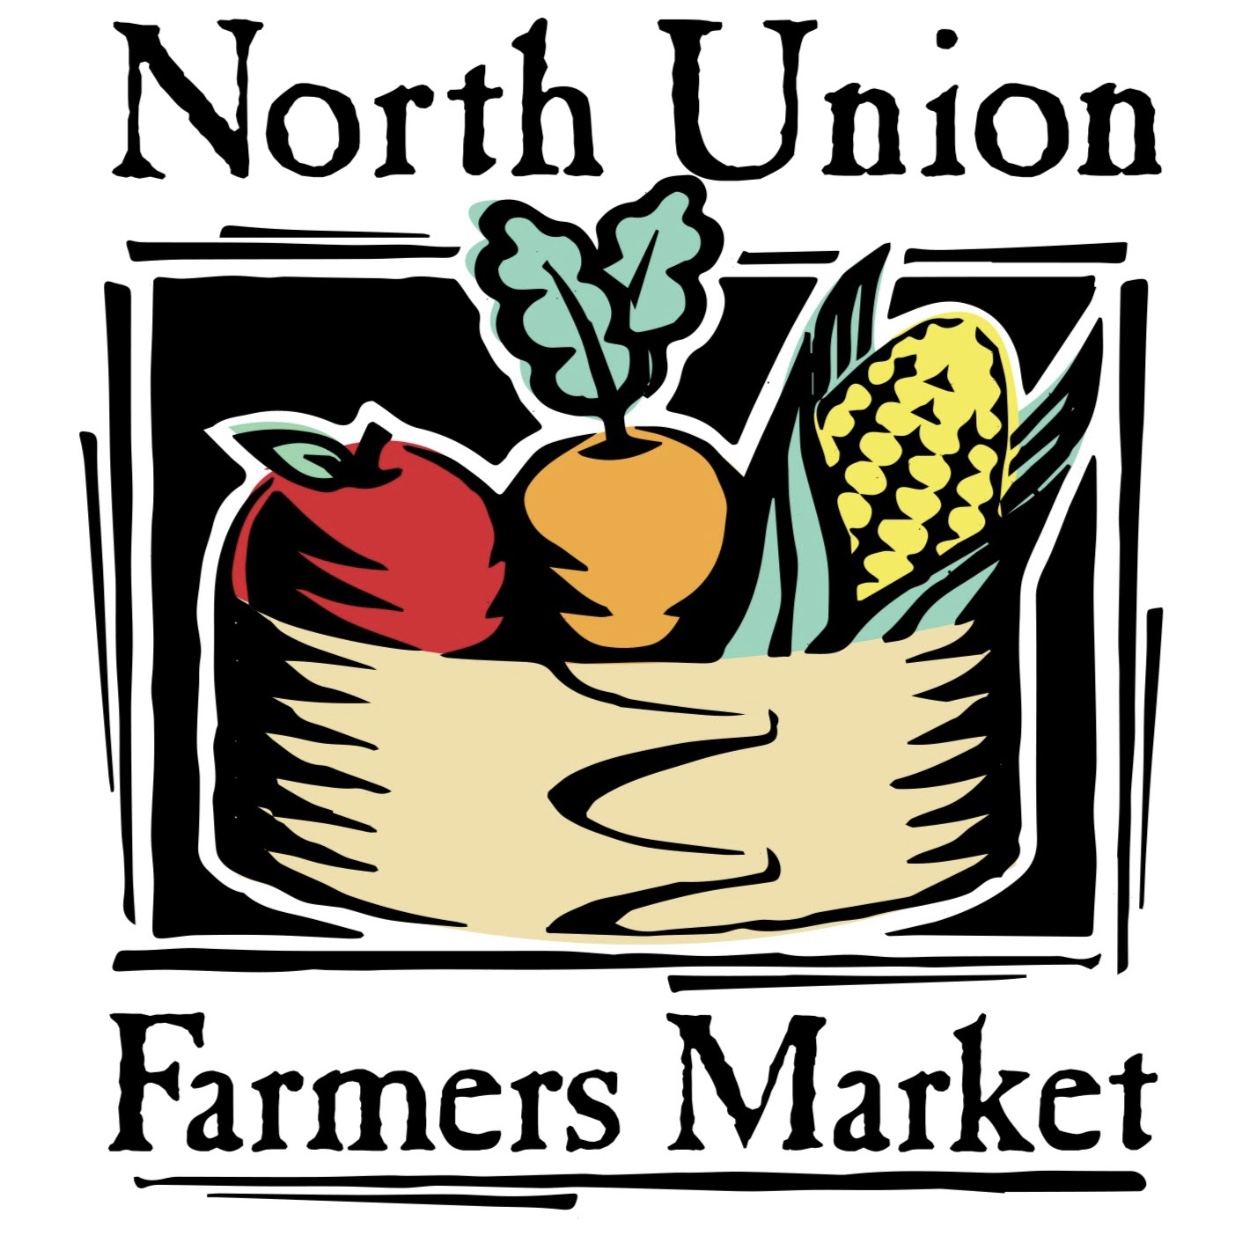 Saturday June 8th, 2019 // 9AM -1 PM  Conveniently located outdoors at Crocker Park in Westlake on Crocker Park Blvd. in front of Dick's Sporting Goods.  INFO:  http://www.northunionfarmersmarket.org/markets/crocker-park/